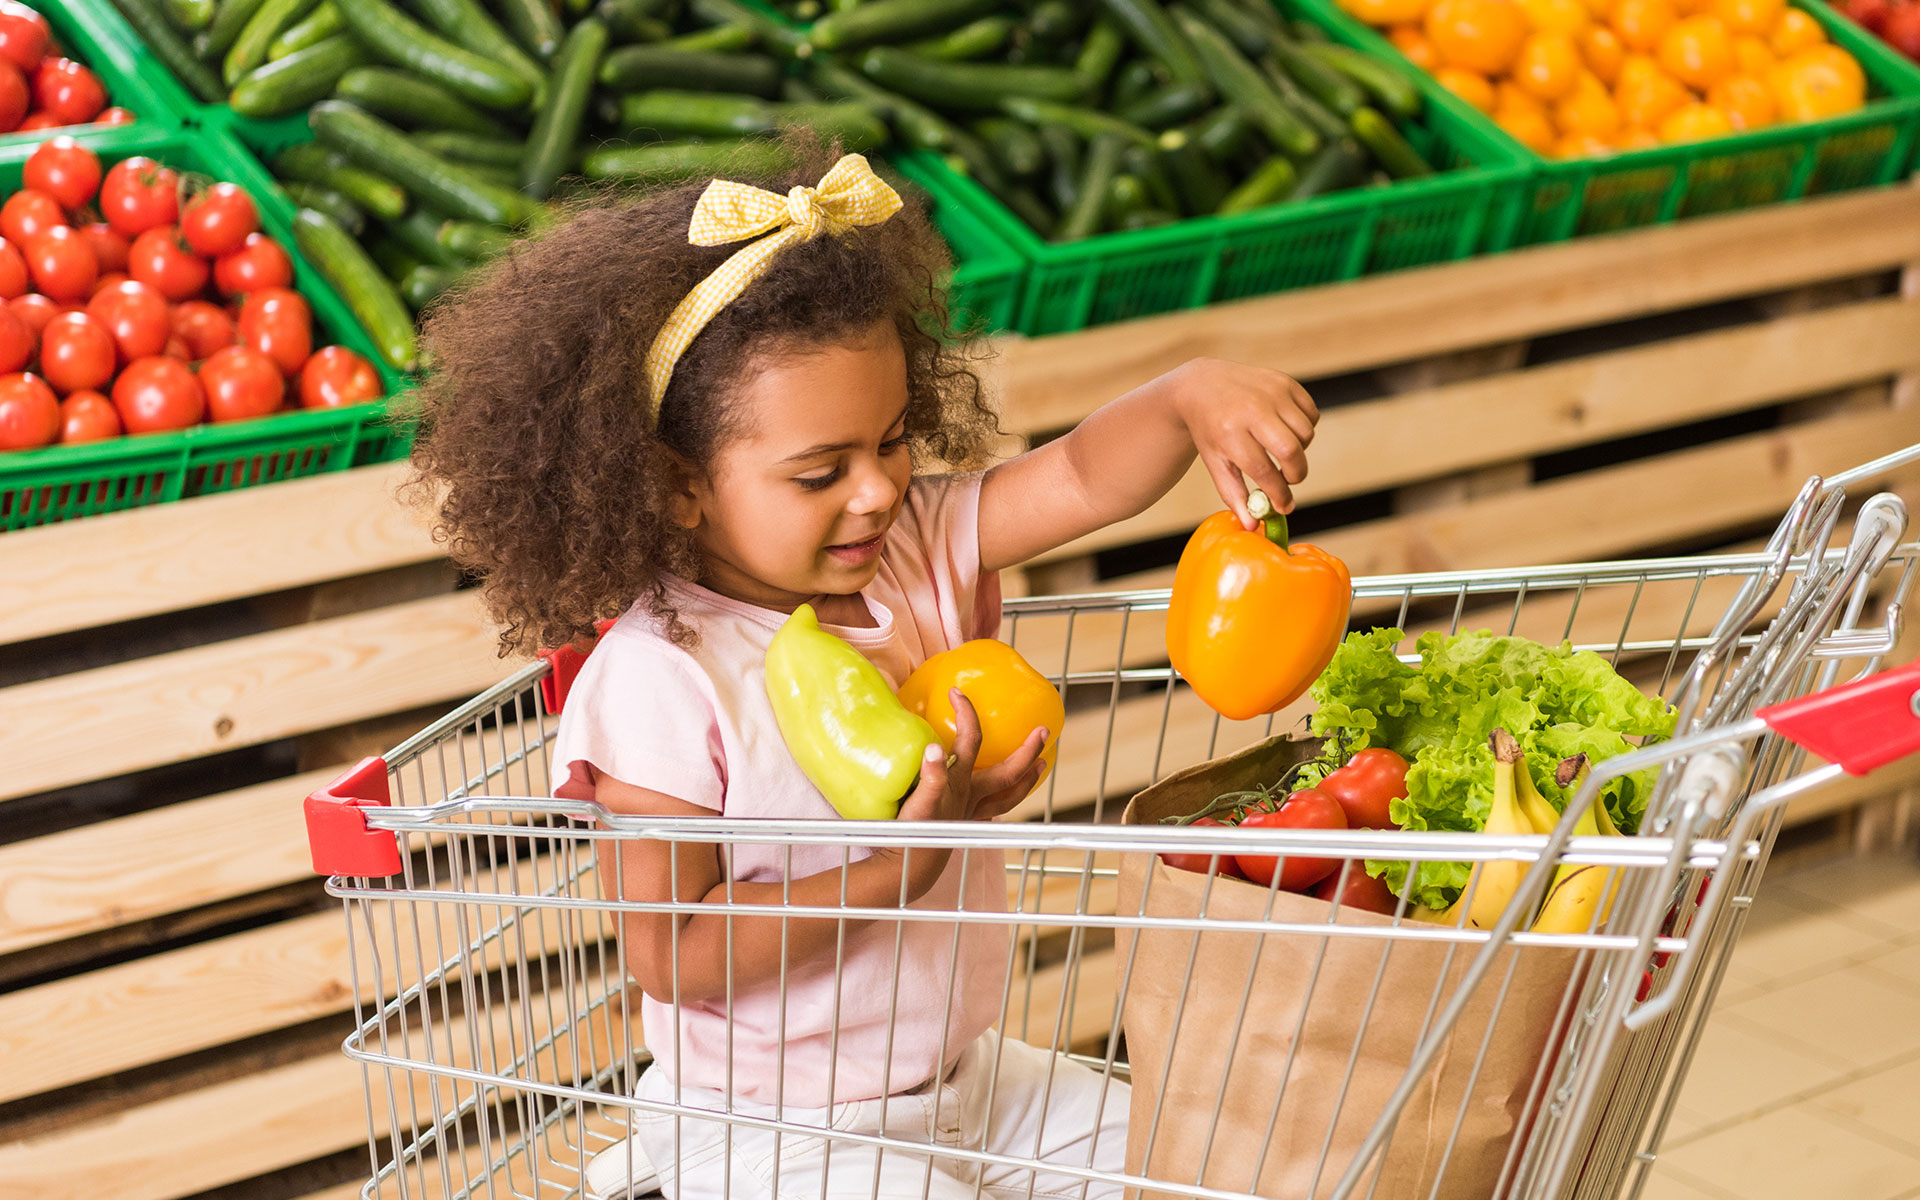 A child in a grocery cart holding three yellow bell peppers.